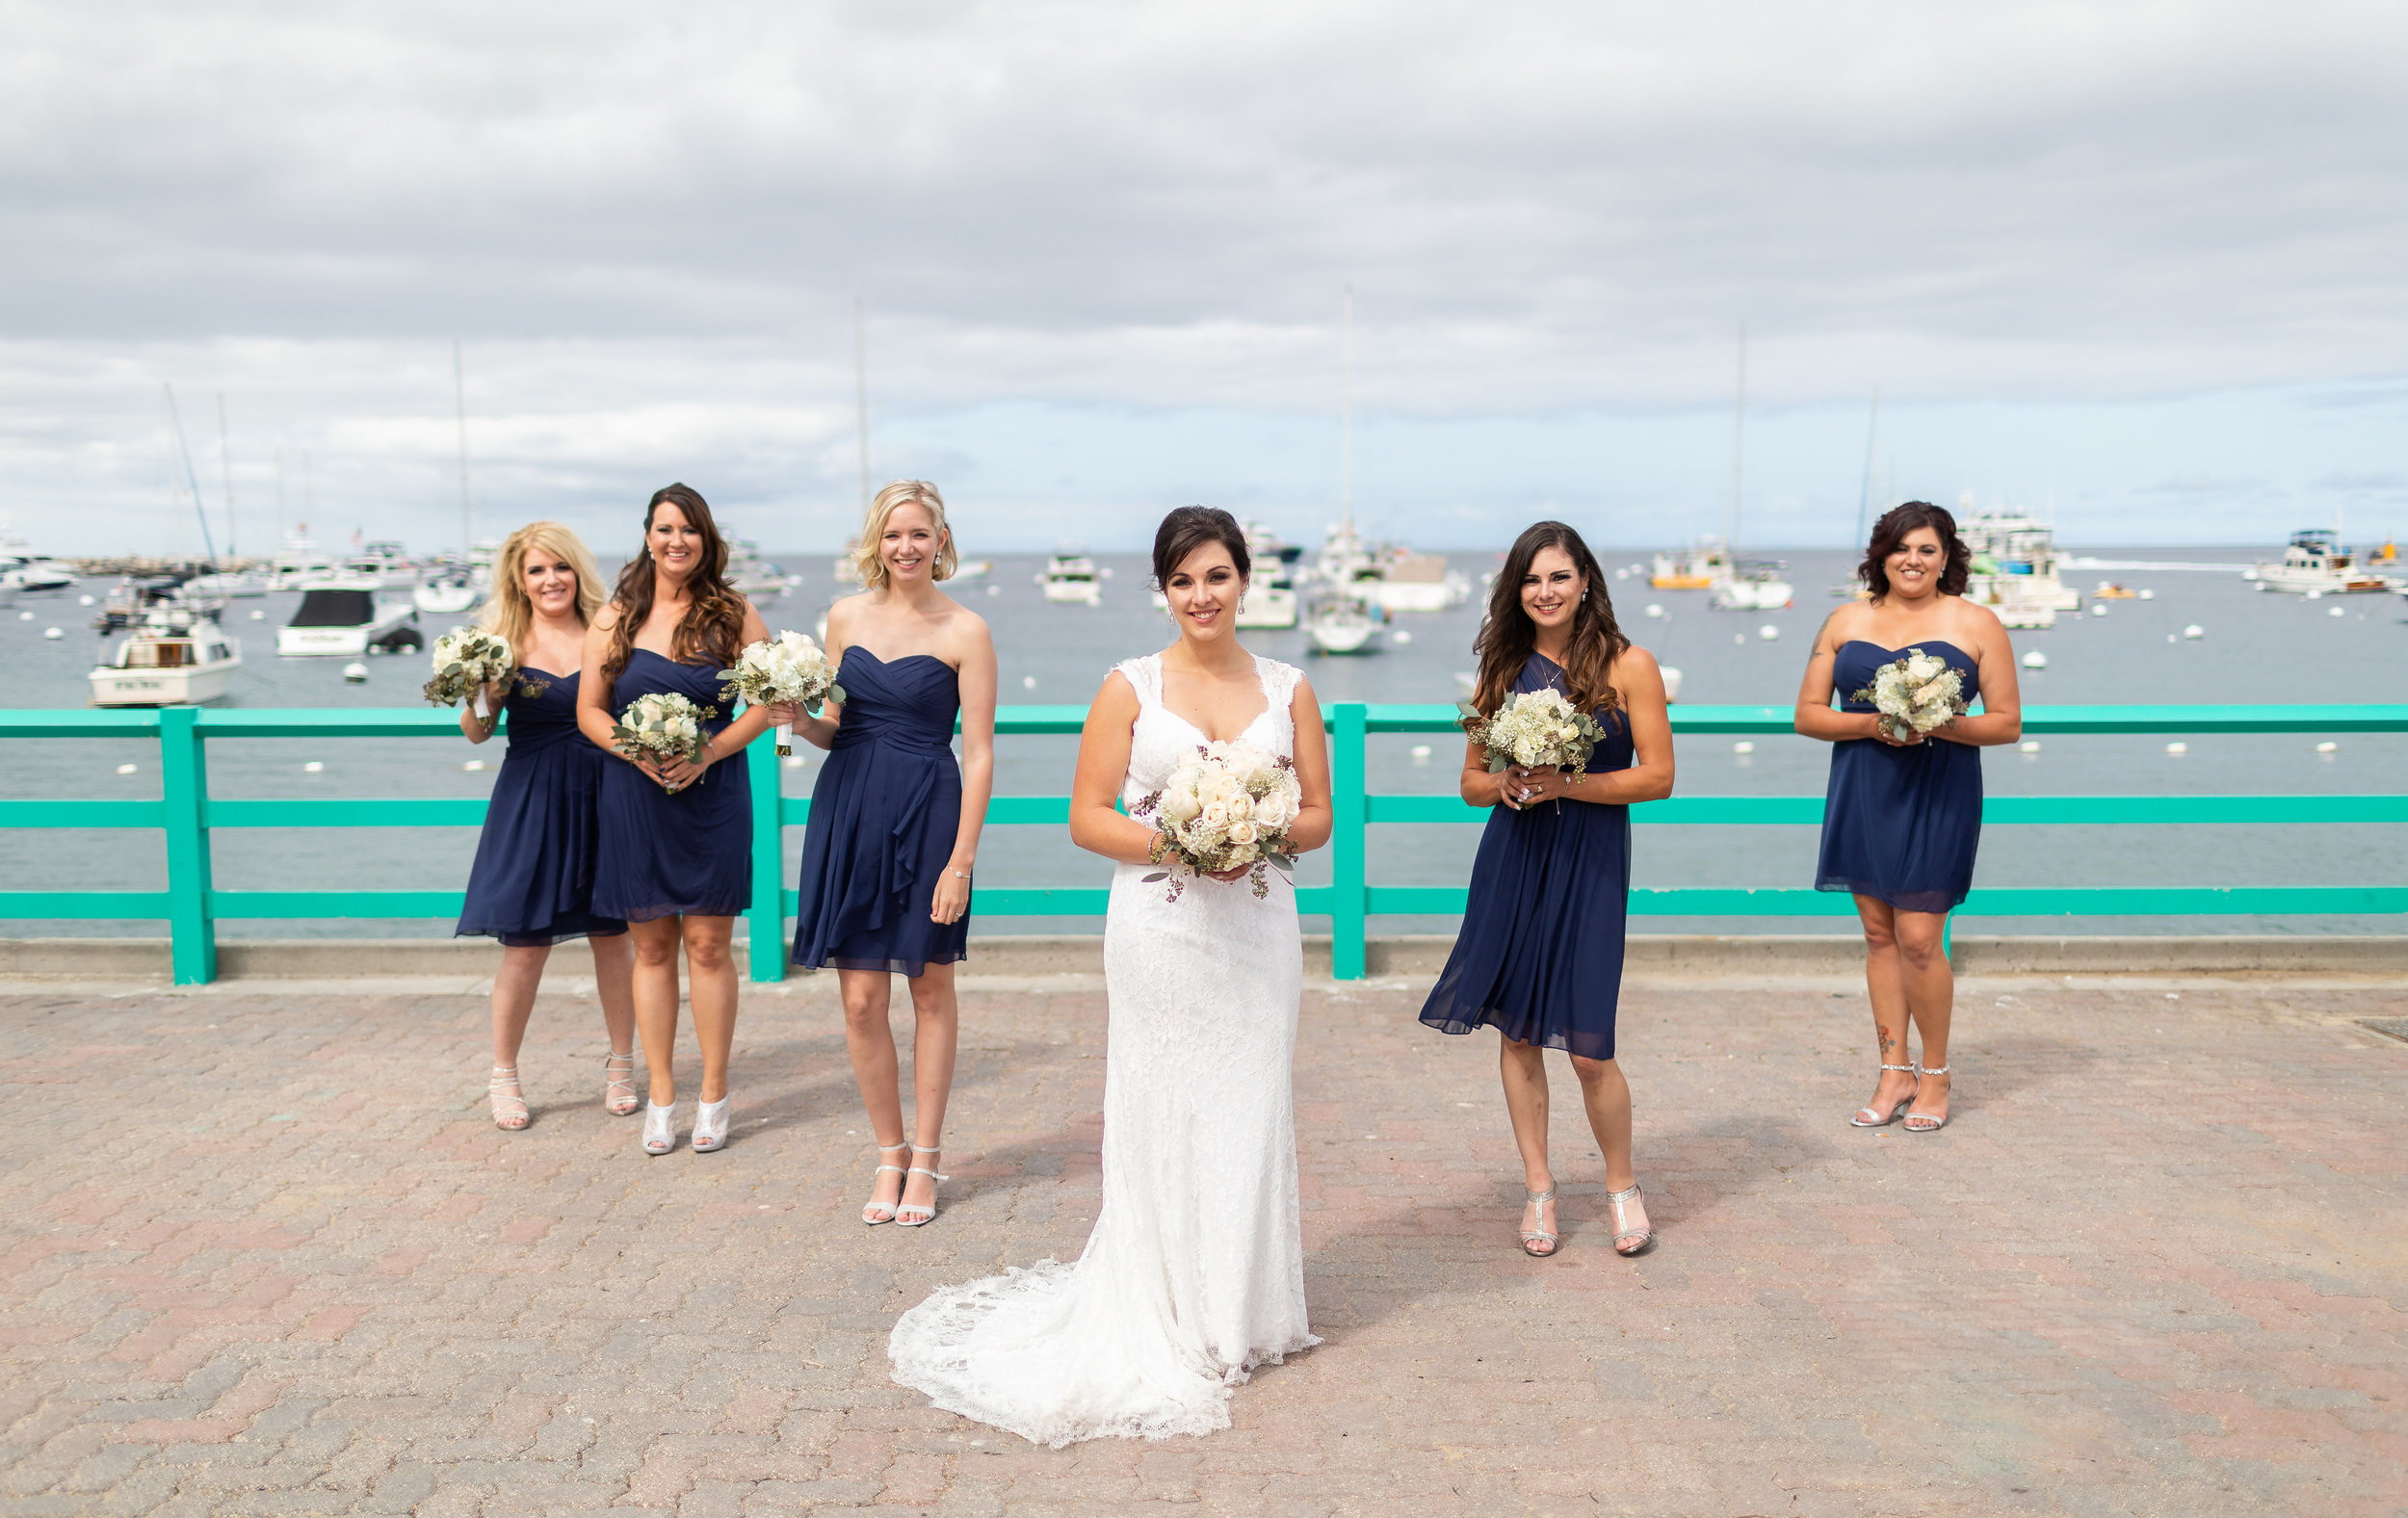 Bridesmaids in Blue Photo Pose with Bride.jpg